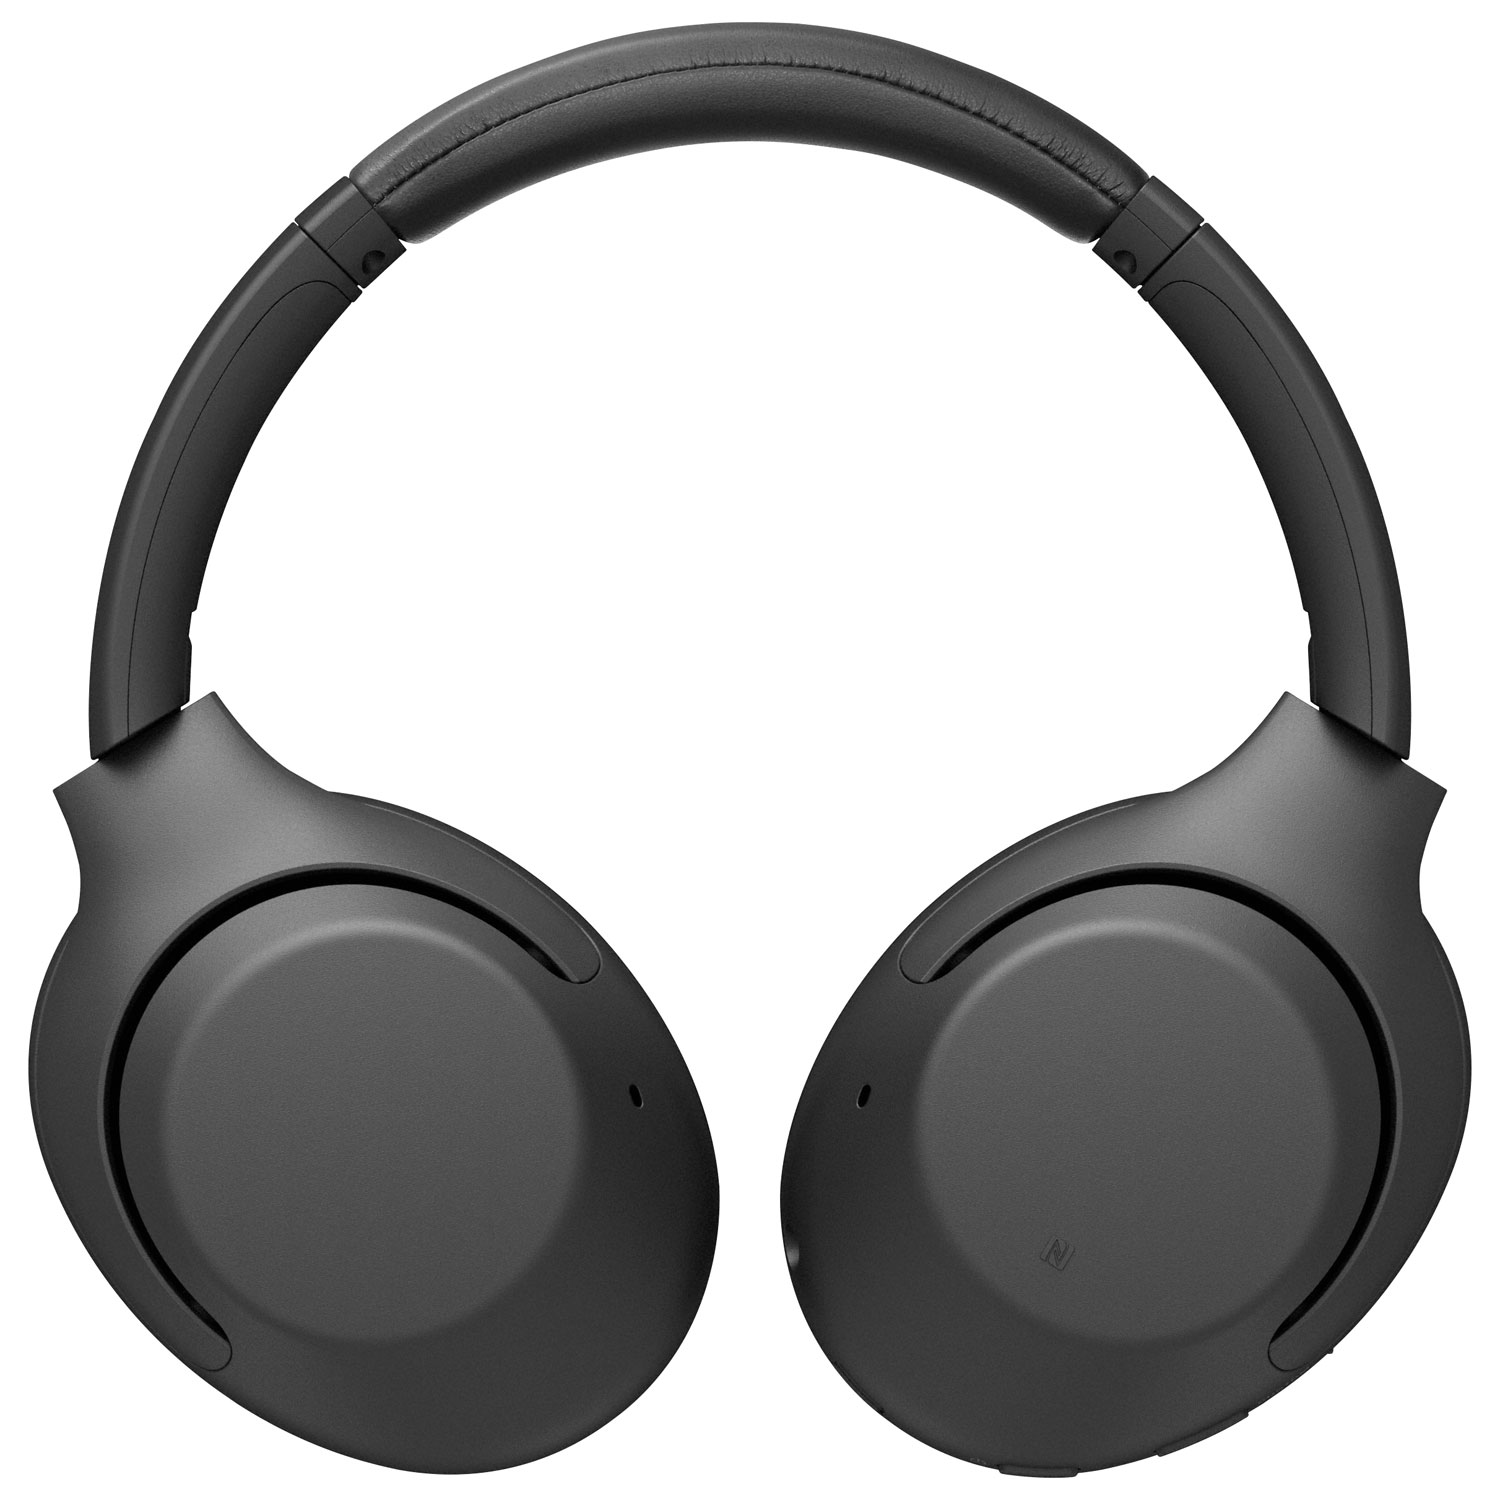 Sony Whxb900n Over Ear Noise Cancelling Bluetooth Headphones Black Best Buy Canada